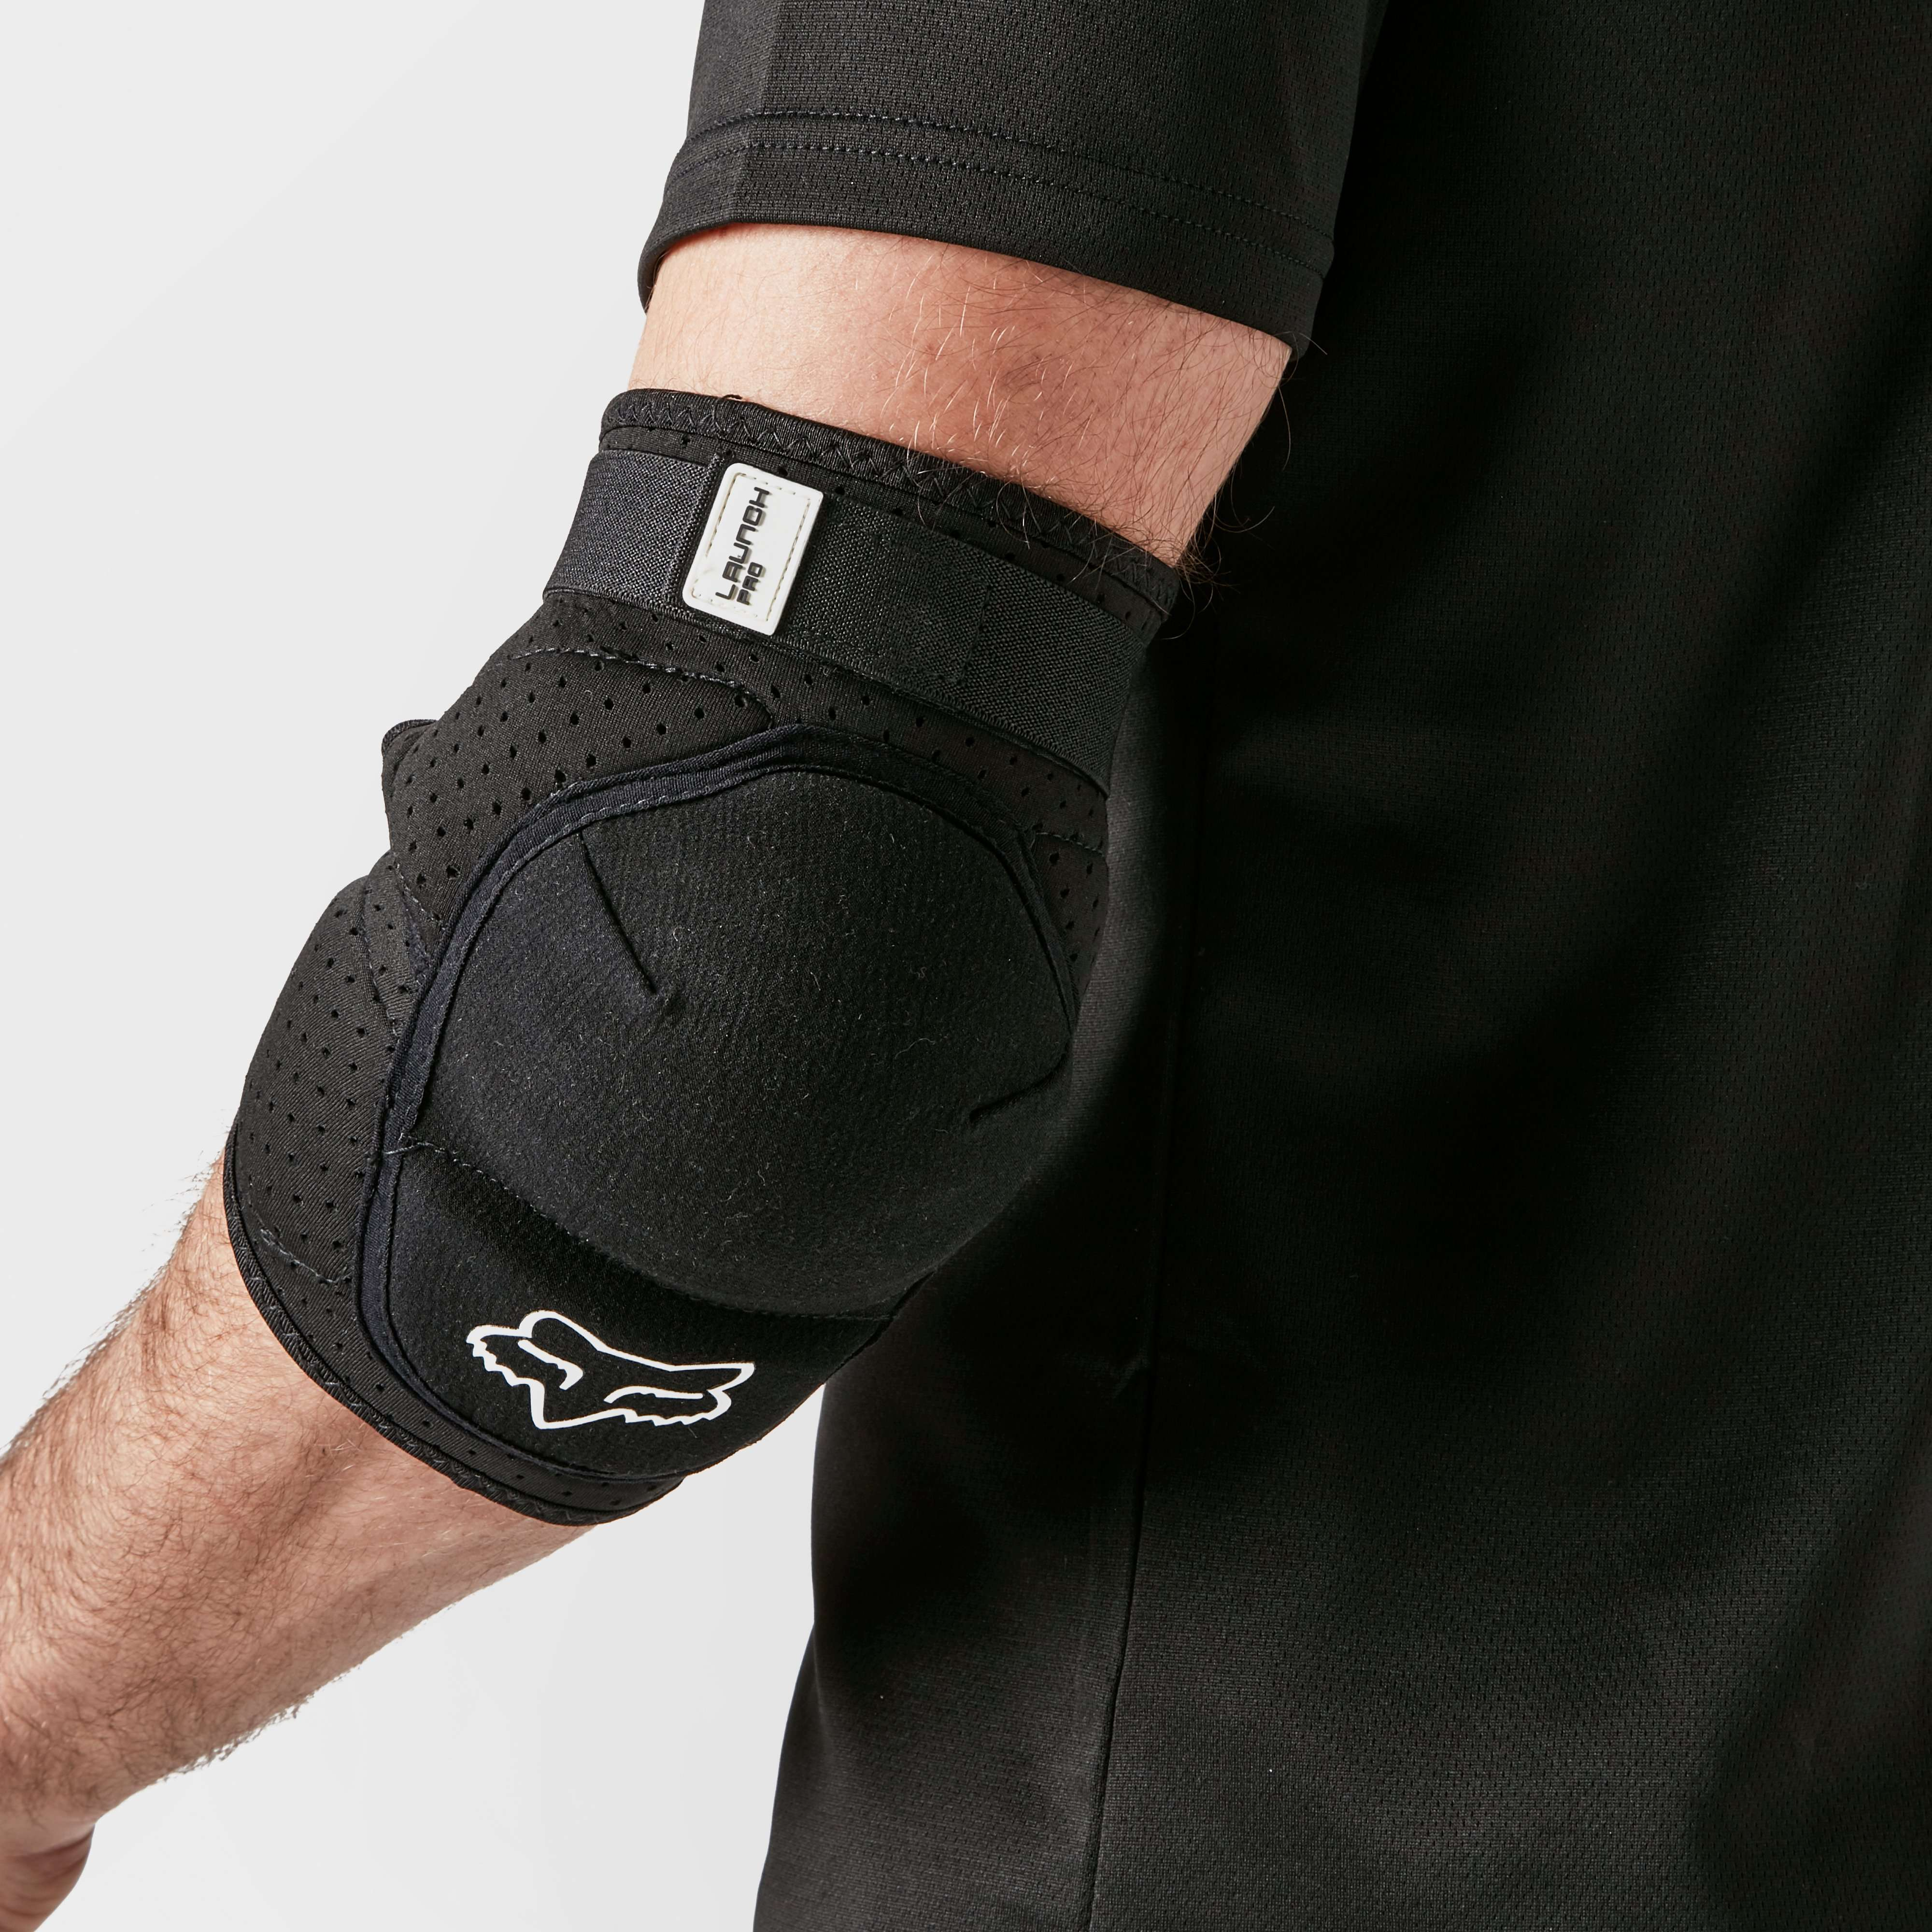 FOX Launch Pro Elbow Pads